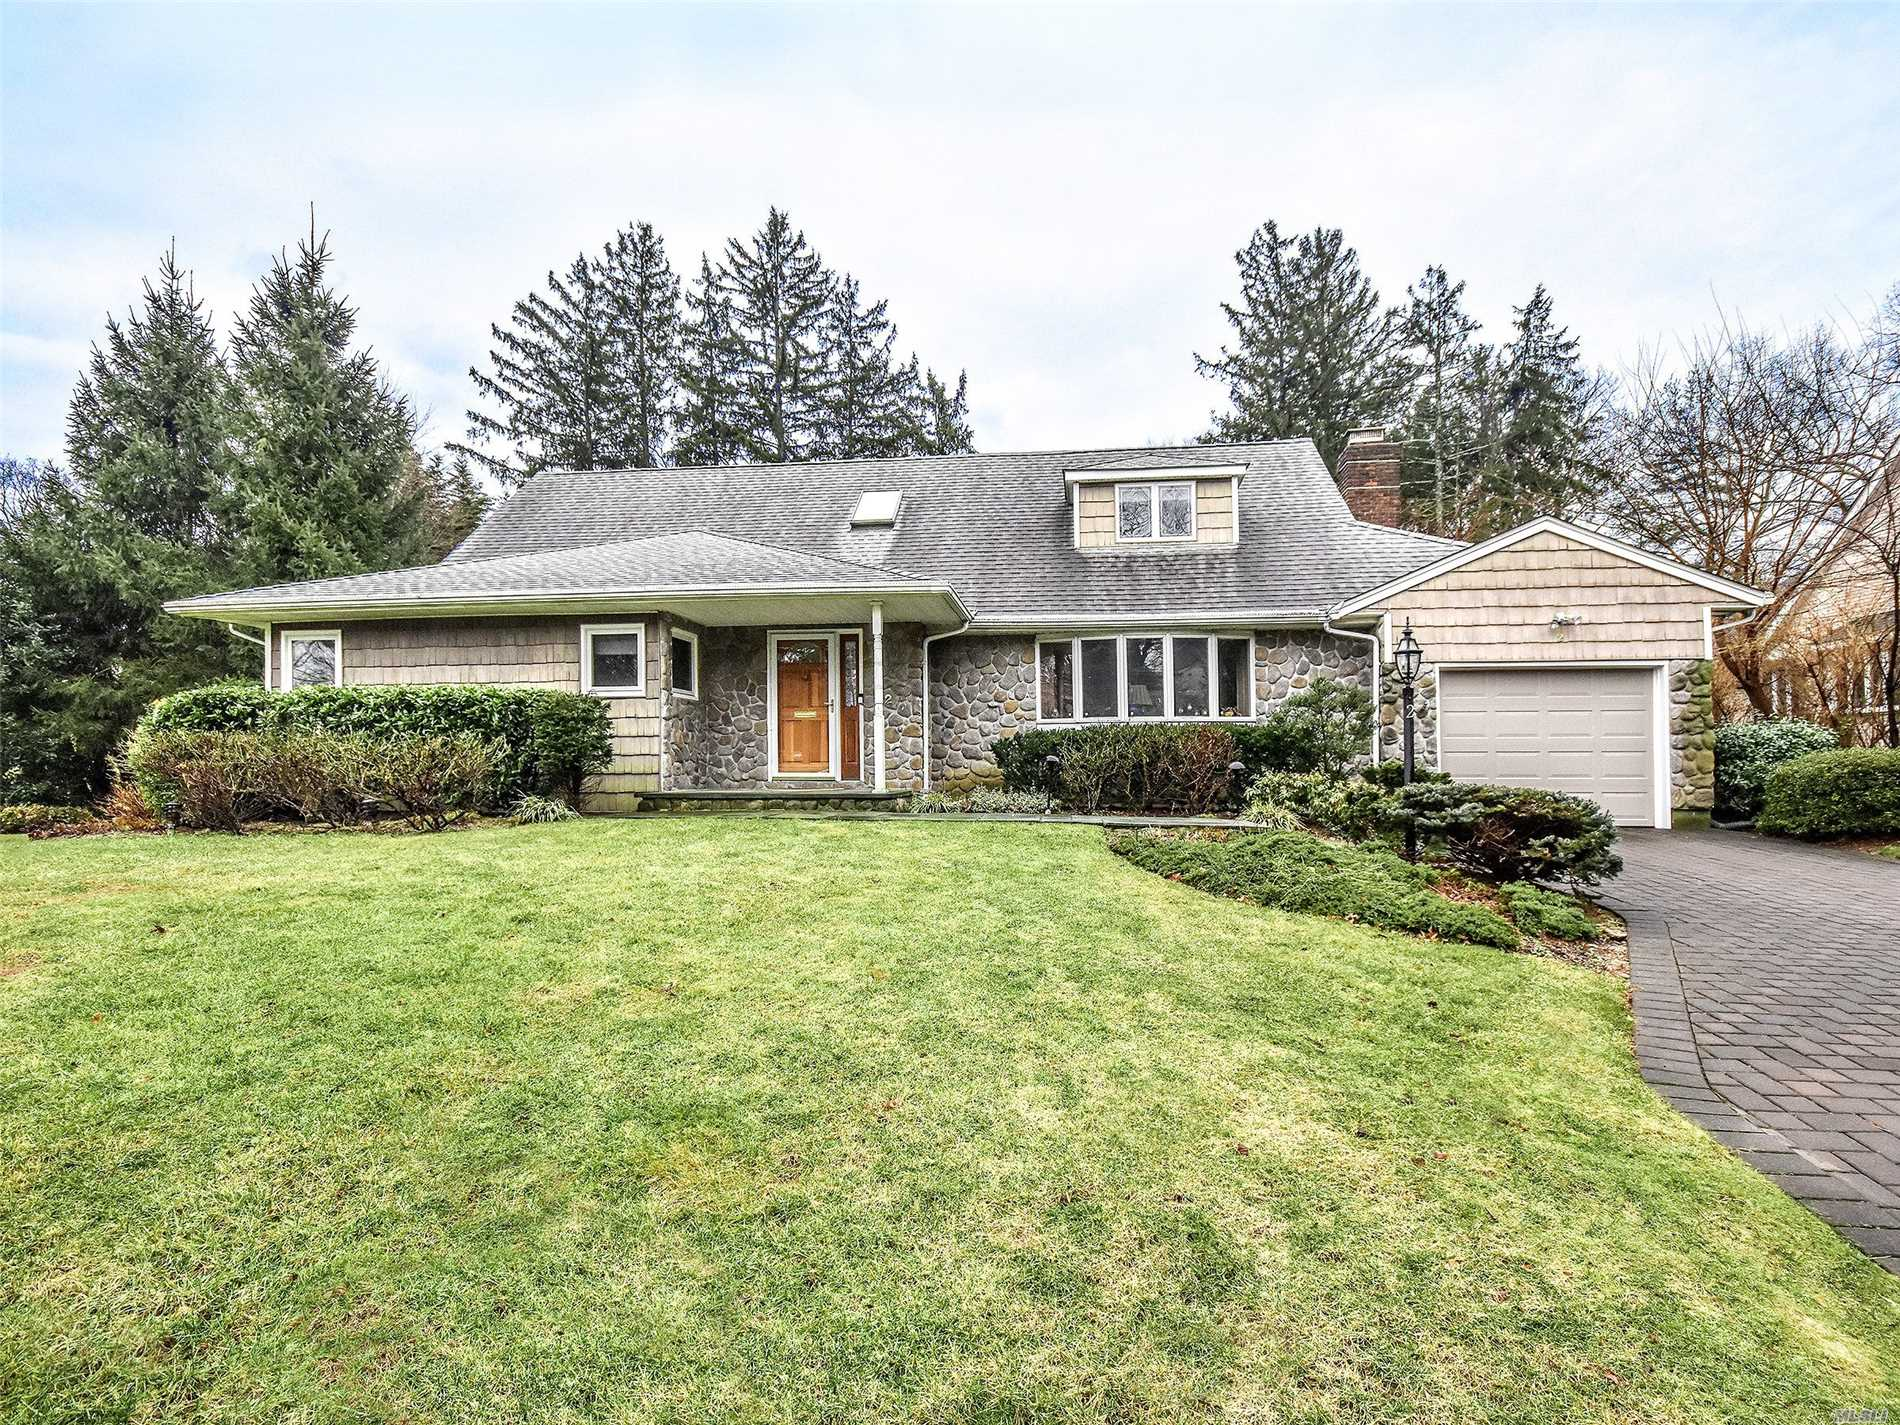 2, 300 Sf. Lake Success Expanded Ranch On Shy 1/3 Acre W/3Br & 2.5 Baths. First Flr Has Lg Foyer W/Skylight, Lr Fdr New Eik, Family Rm W/Frpl & Master Br/Bth With Radiant Heat & Walk In Closets. 2nd Flr Has Two Br & Bth , Generator, Heated Driveway W/Pavers, Hardwood Fl., Village Of Lake Success Club. Close To All, Train. Expressway And Shopping.